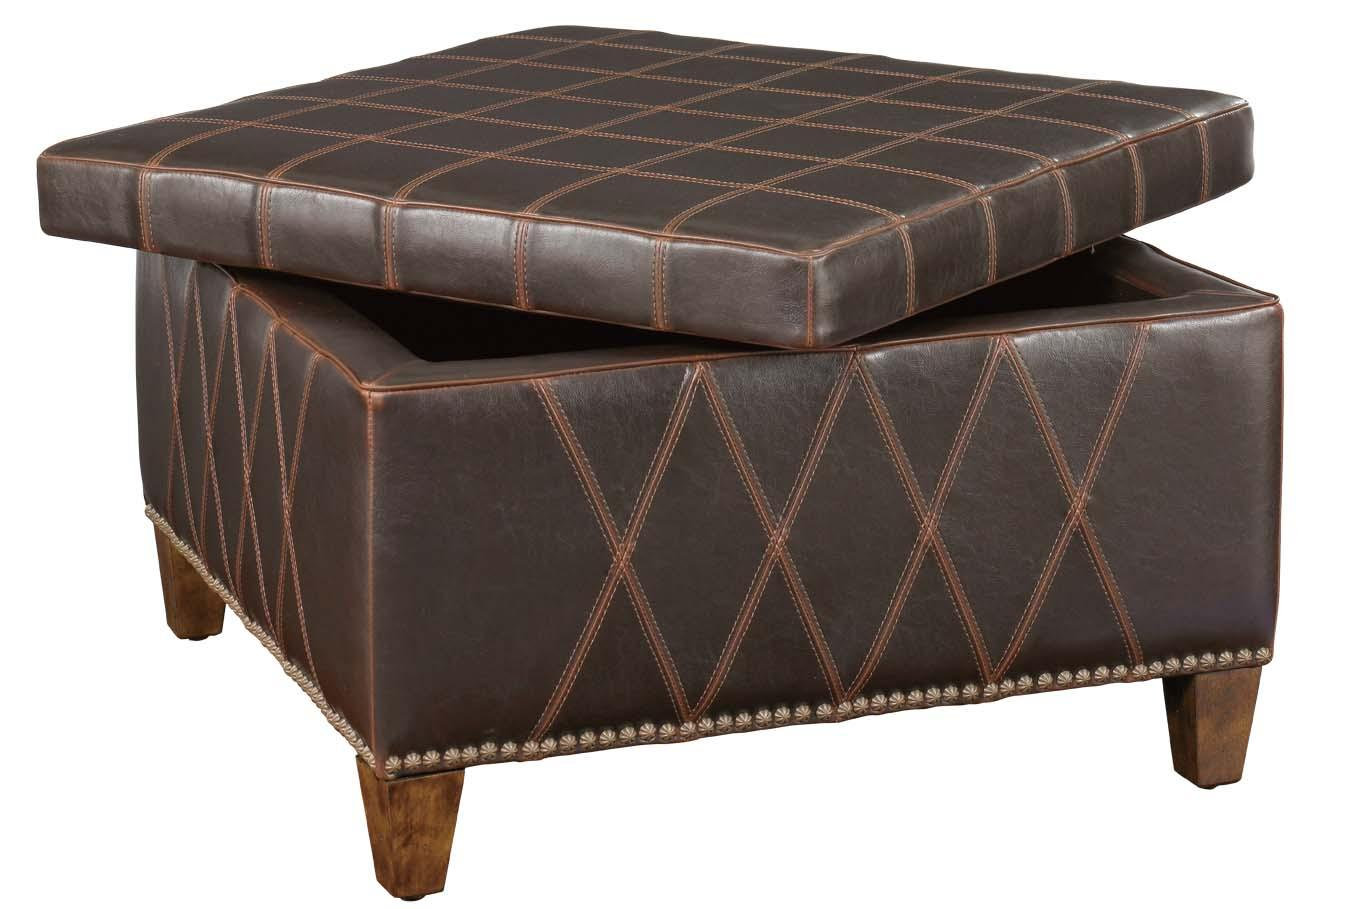 Uttermost Accent Furniture Wattley Storage Ottoman - Item Number: 23005